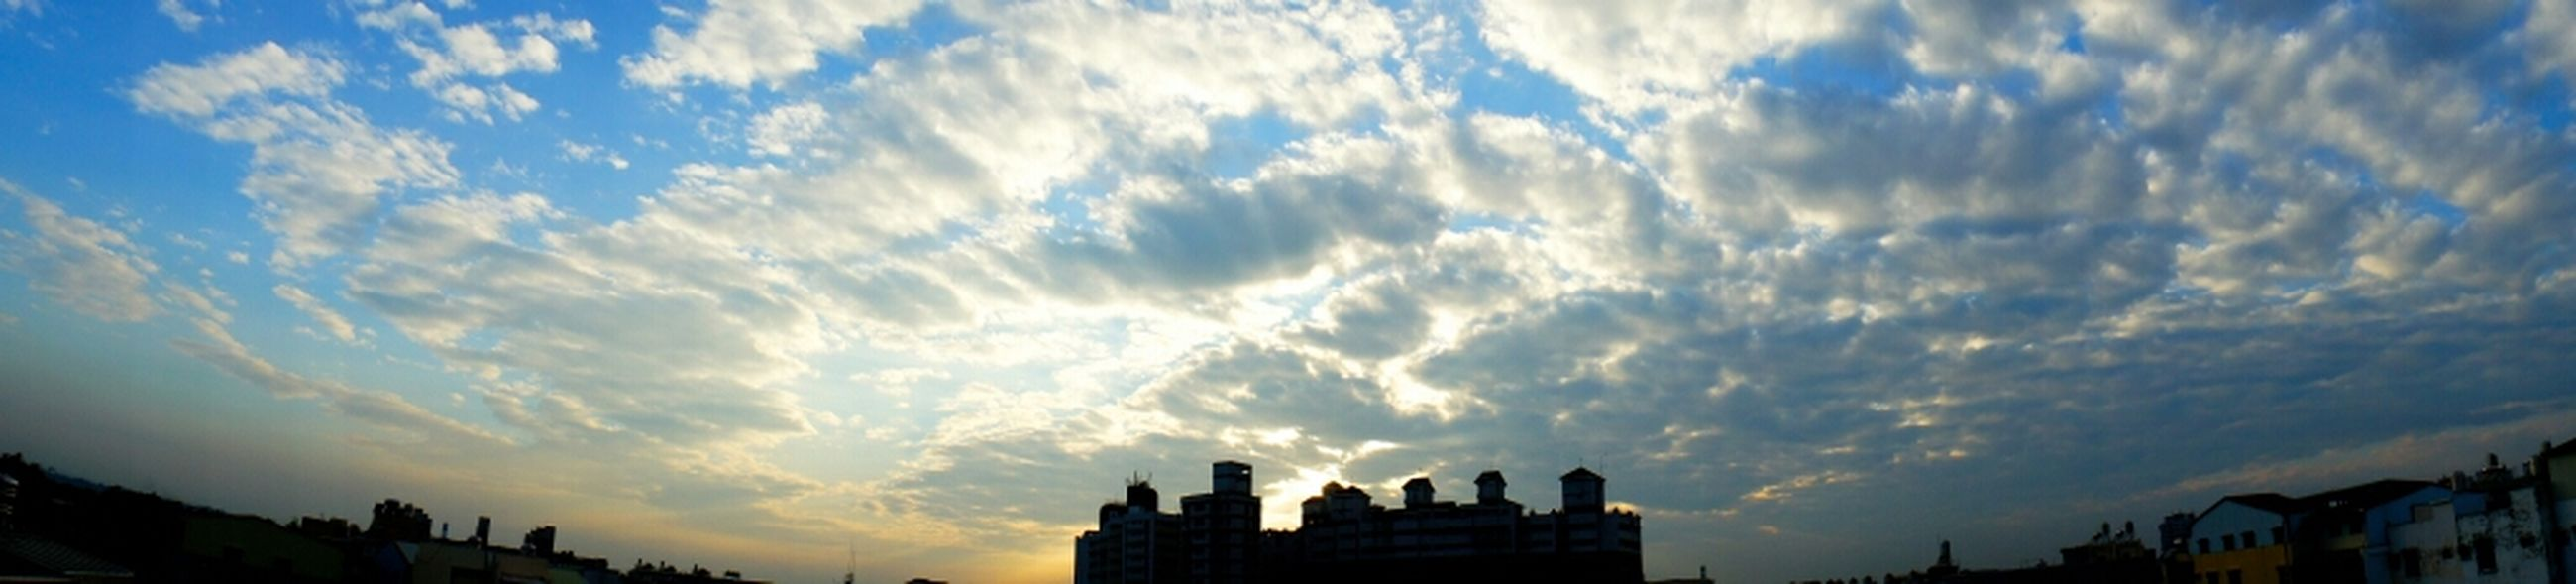 building exterior, architecture, sky, built structure, silhouette, cloud - sky, sunset, low angle view, city, cloud, cloudy, beauty in nature, nature, sunlight, scenics, sunbeam, outdoors, blue, no people, tree